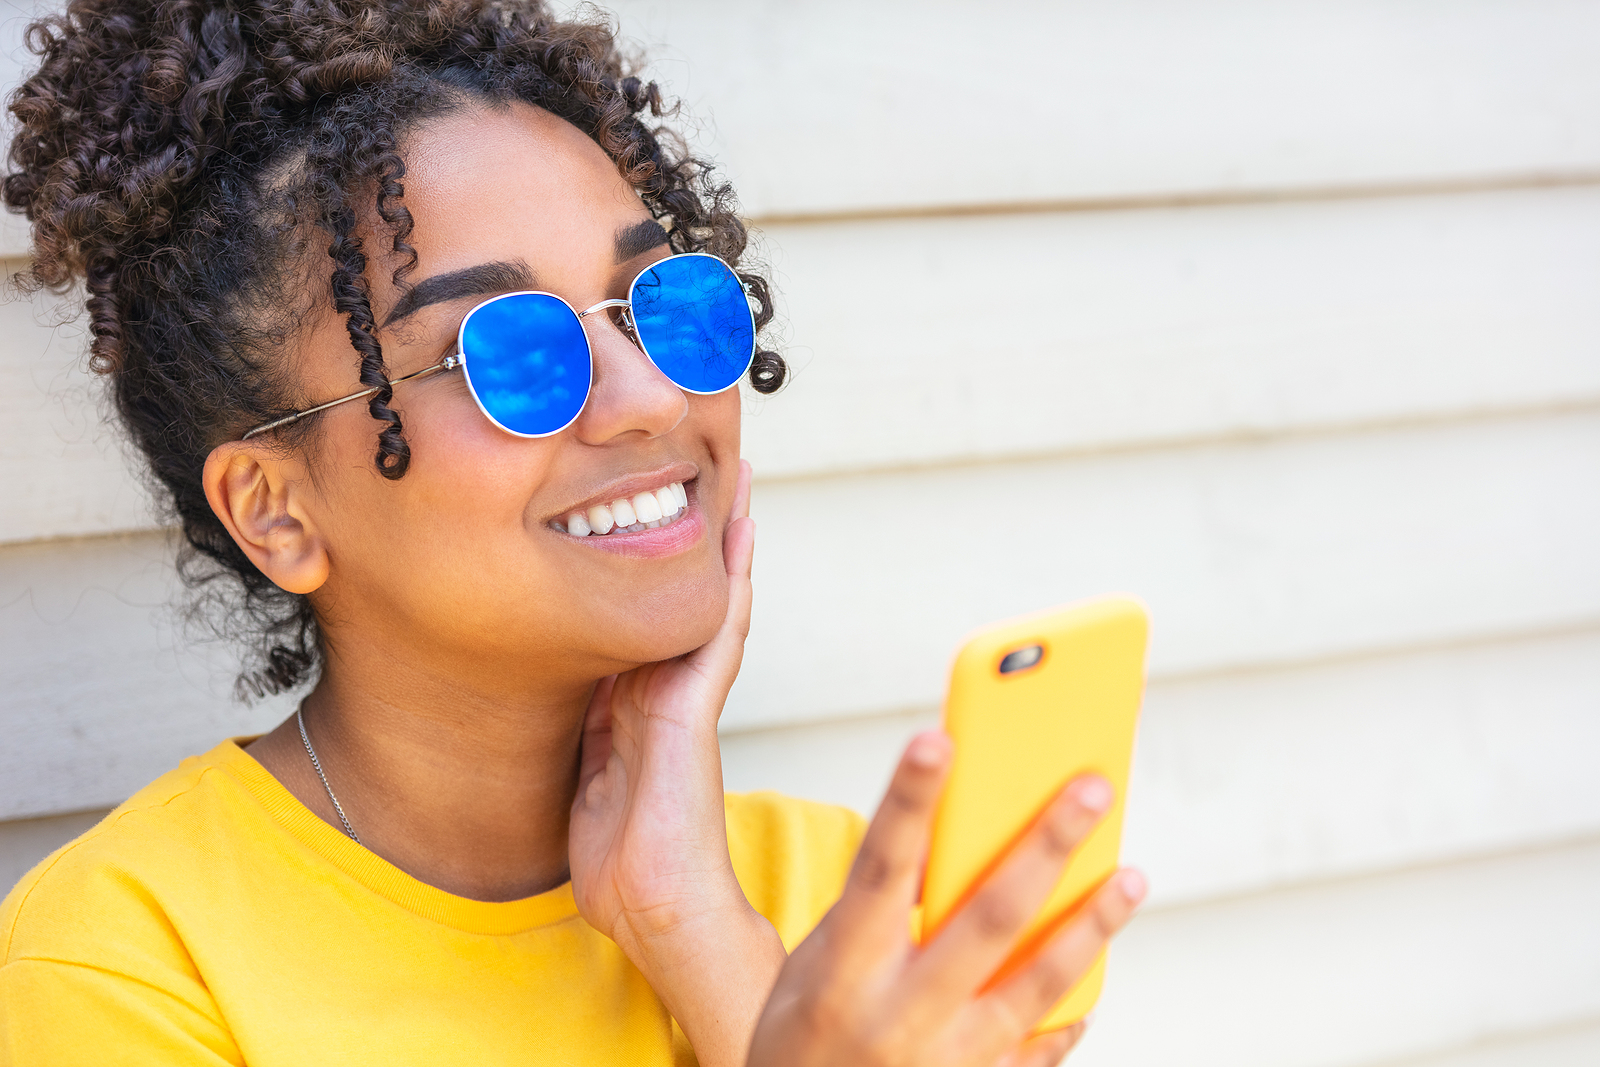 An attractive black woman with sunglasses hold her phone up and smiles for the camera.